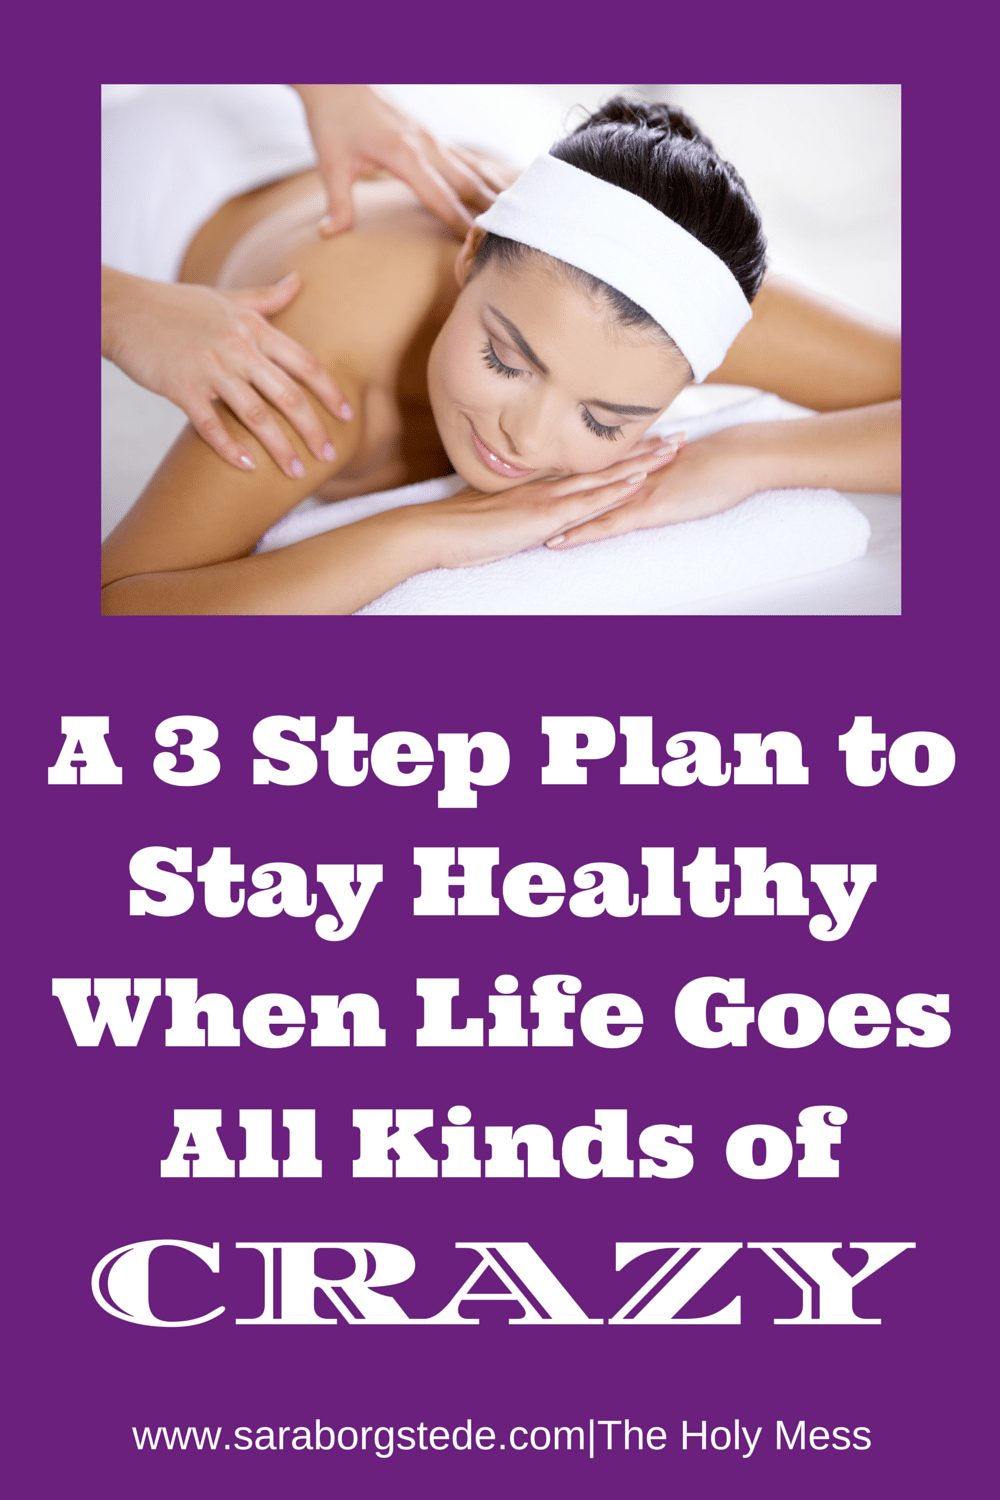 A 3 Step Plan to Stay Healthy